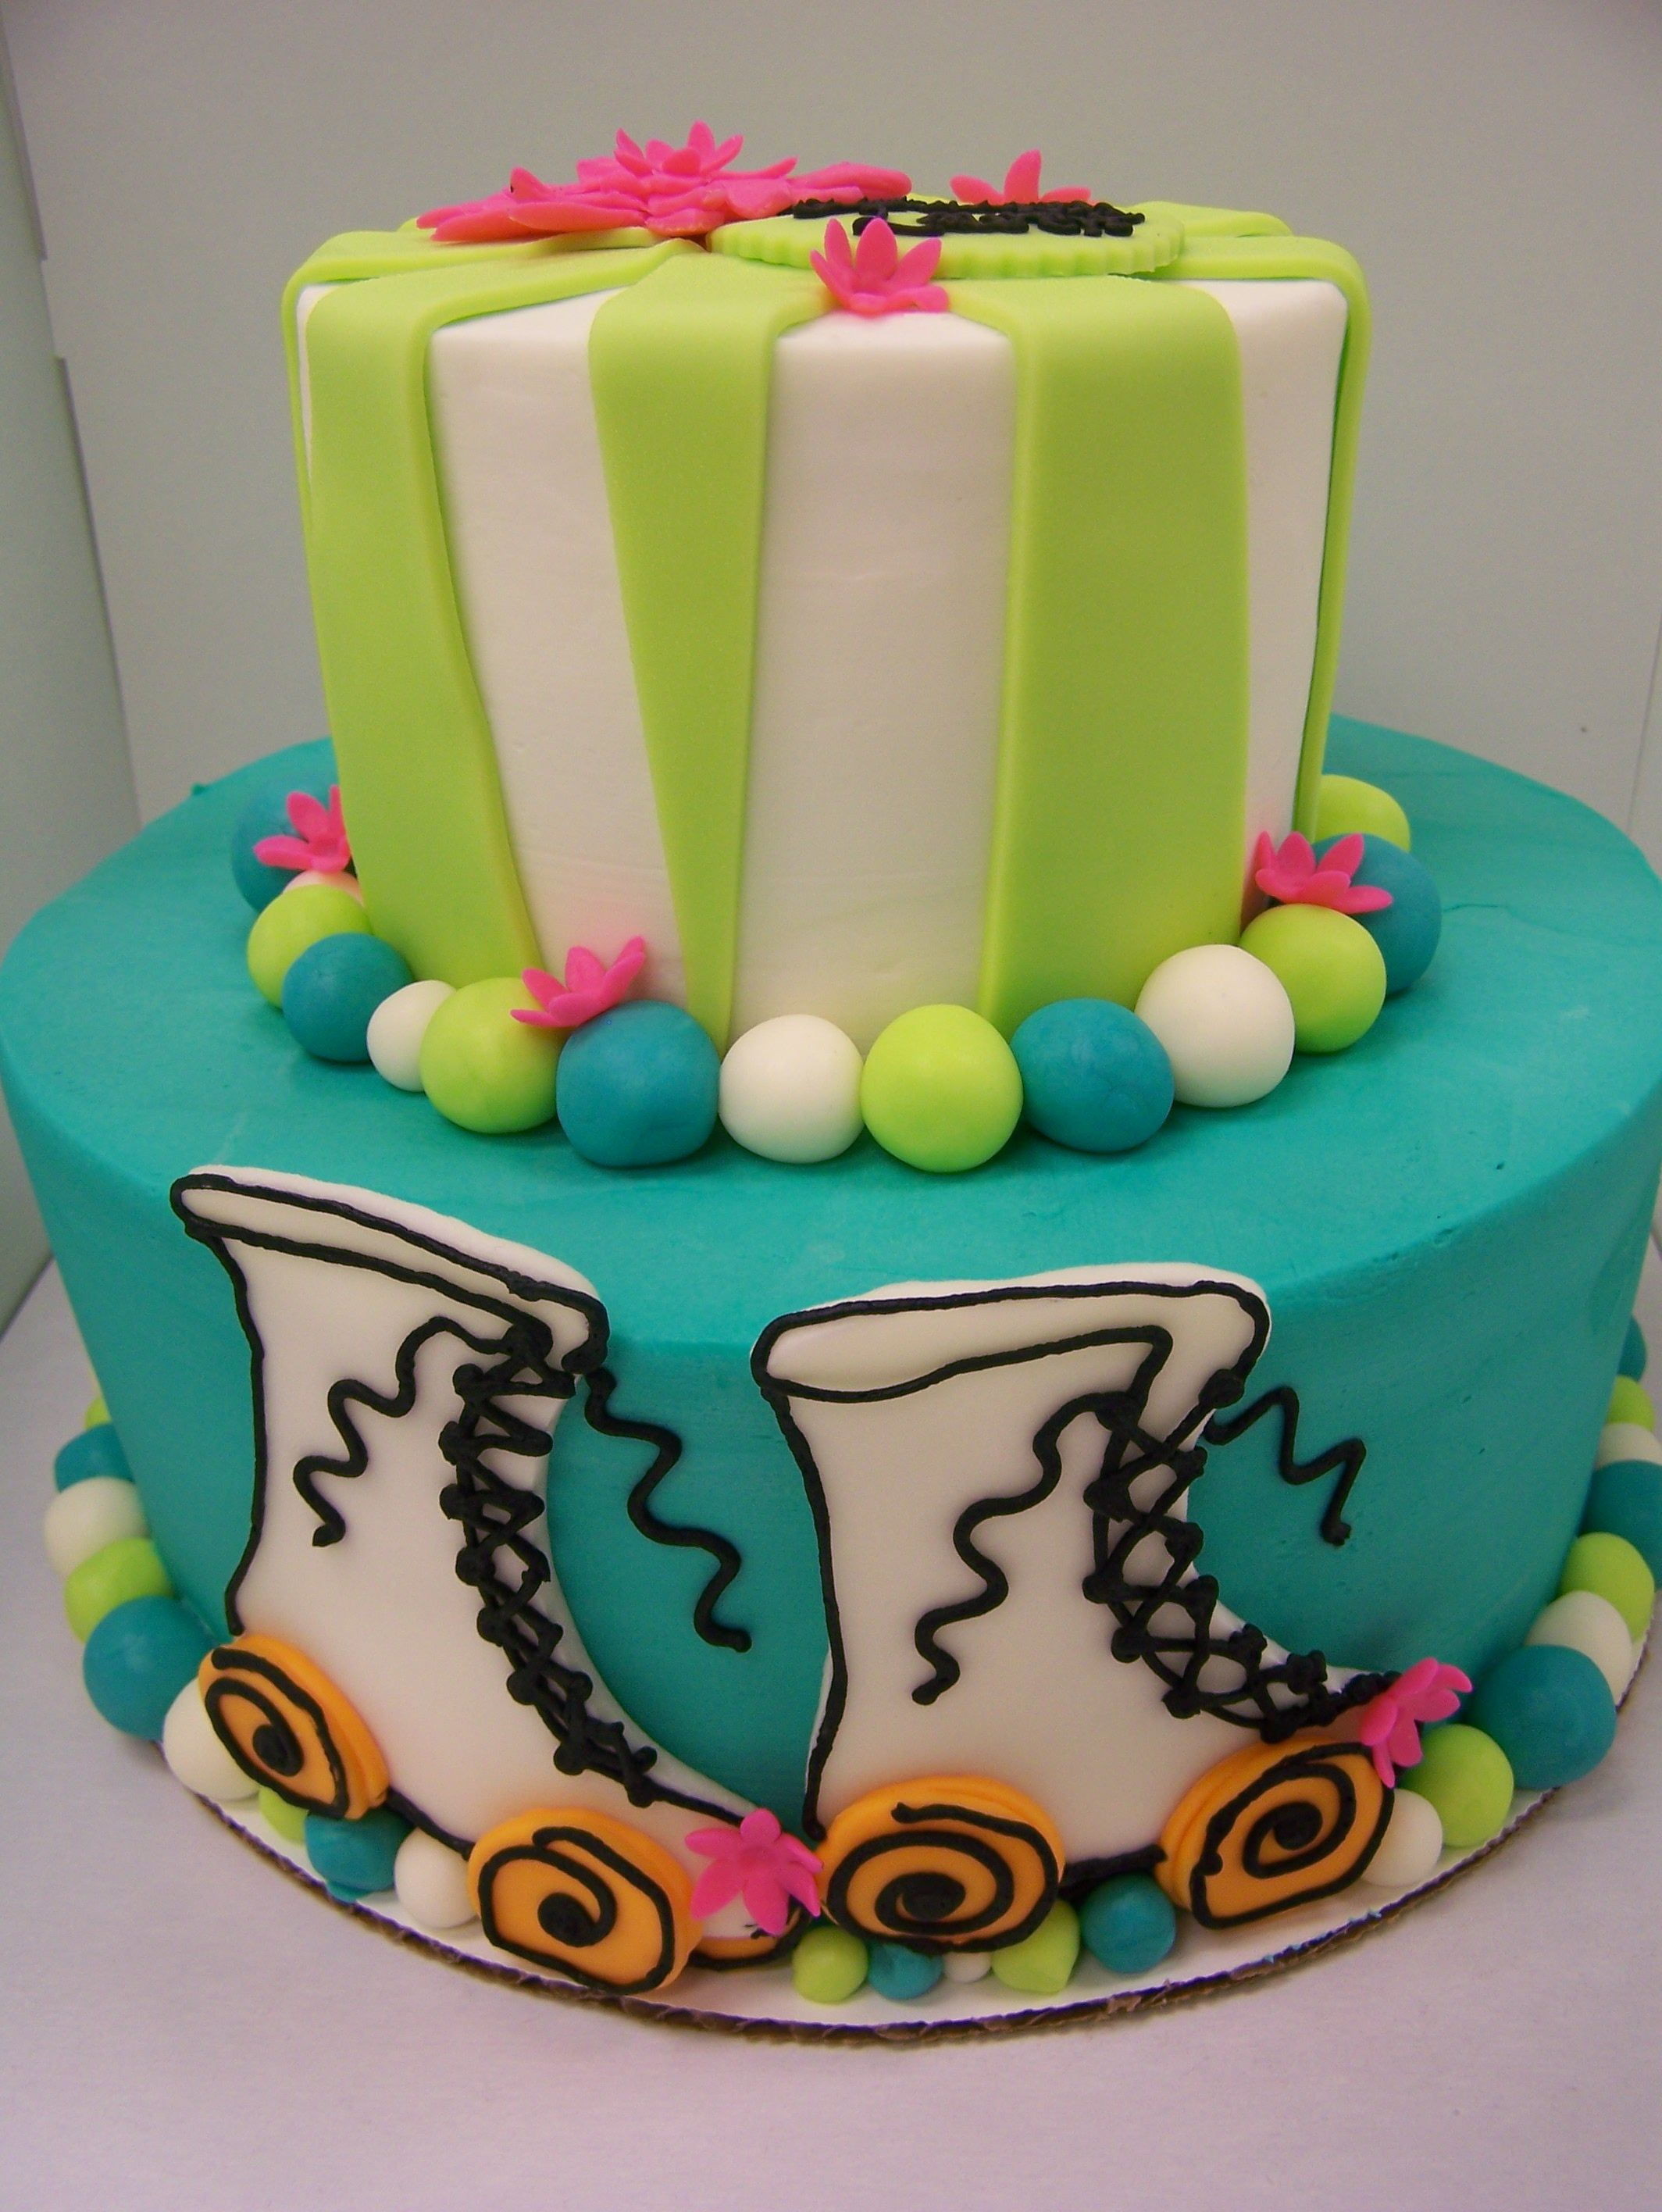 Roller skating rink westchester ny - 3 Women And An Oven Made This Fun Roller Skating Cake The Iced Art Is